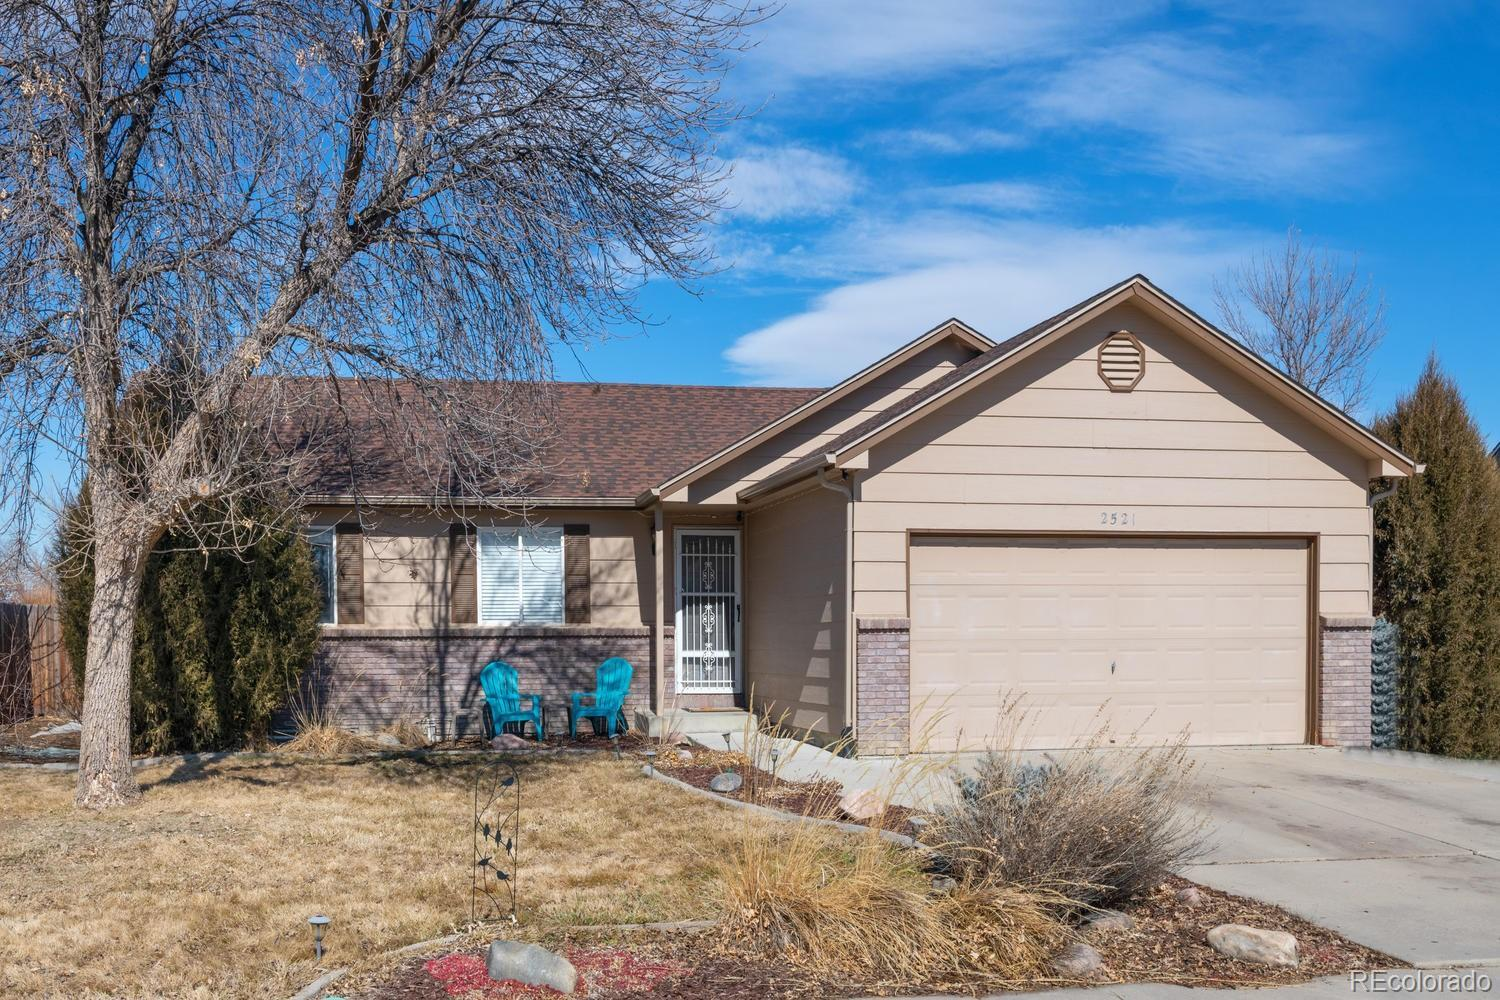 2521 15th Street, Loveland, CO 80537 - #: 4054847